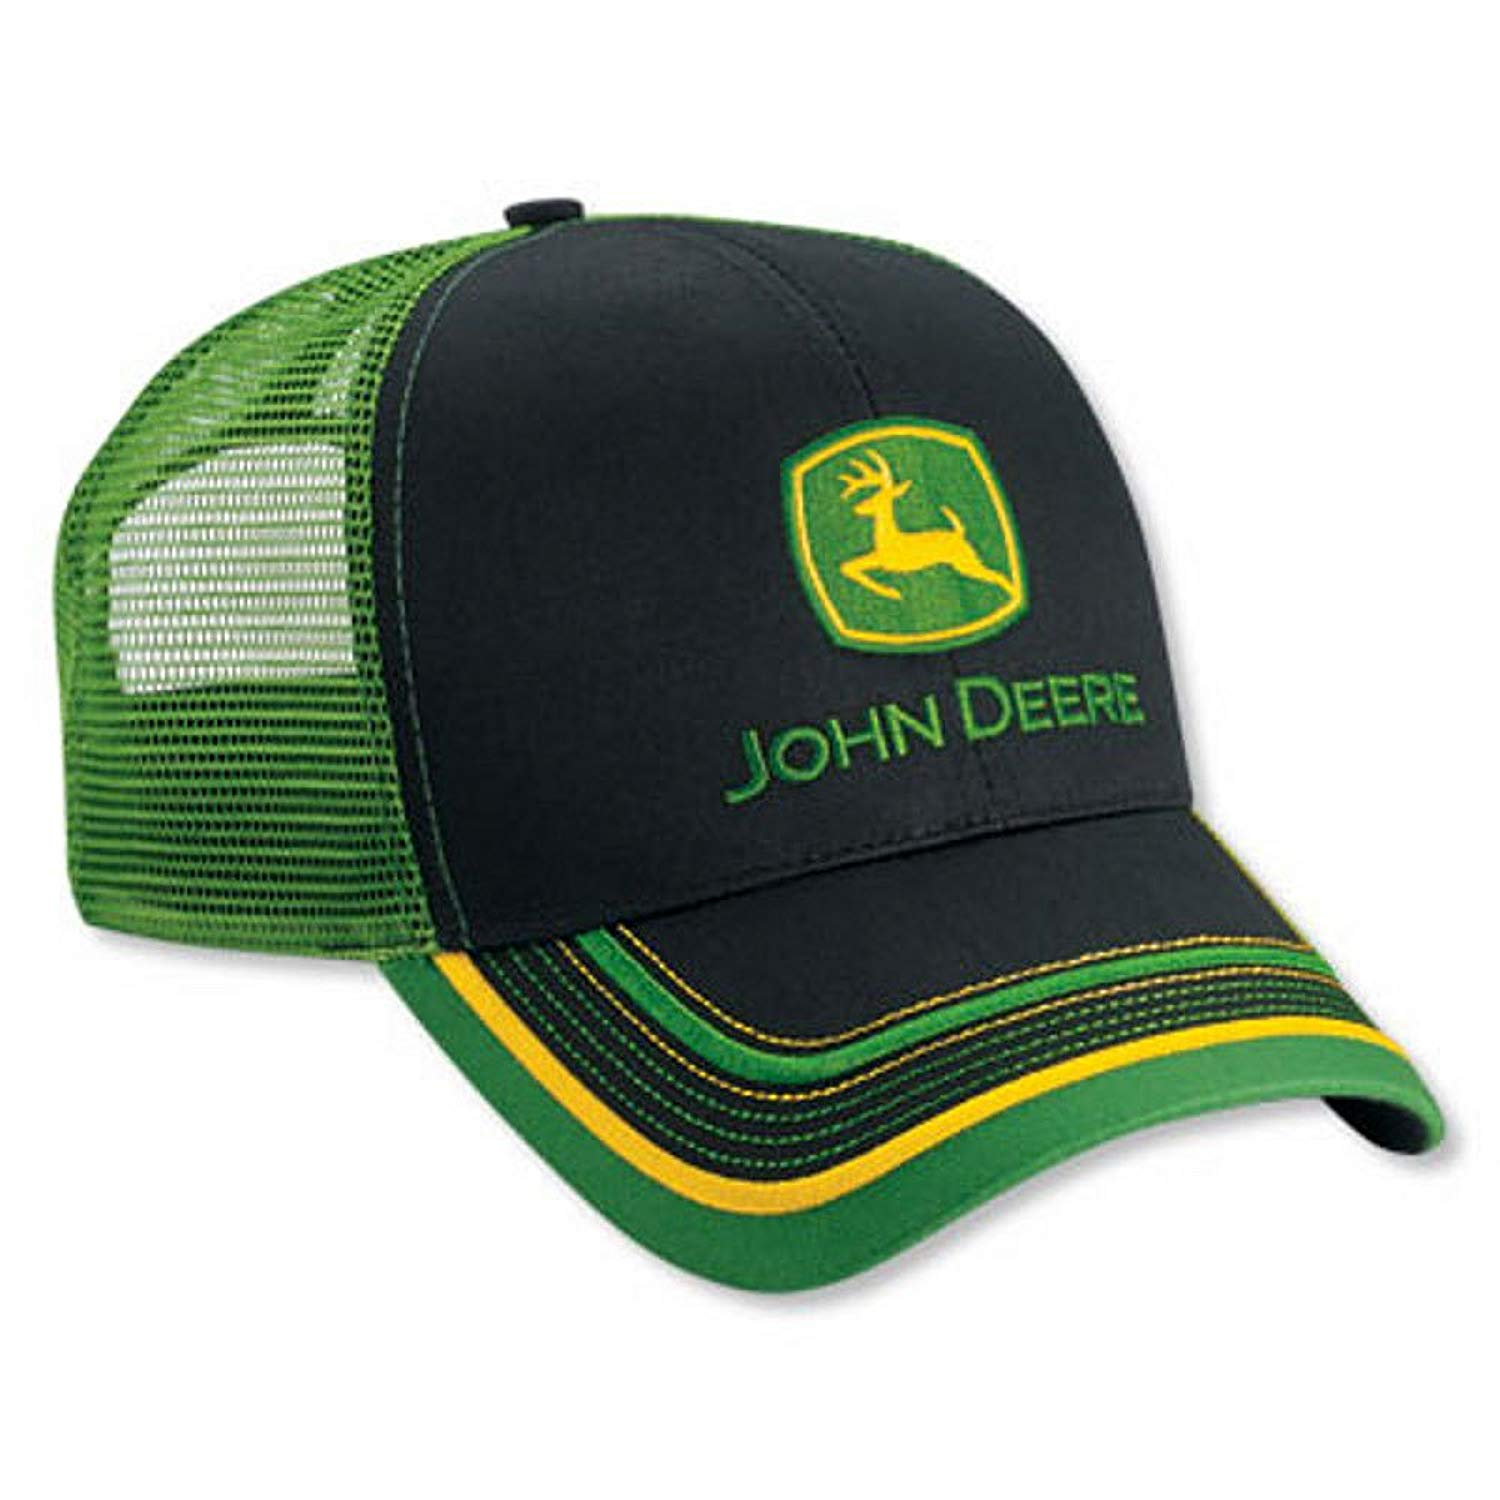 Mens John Deere Hat/Cap (Black/Green Mesh) - LP52392